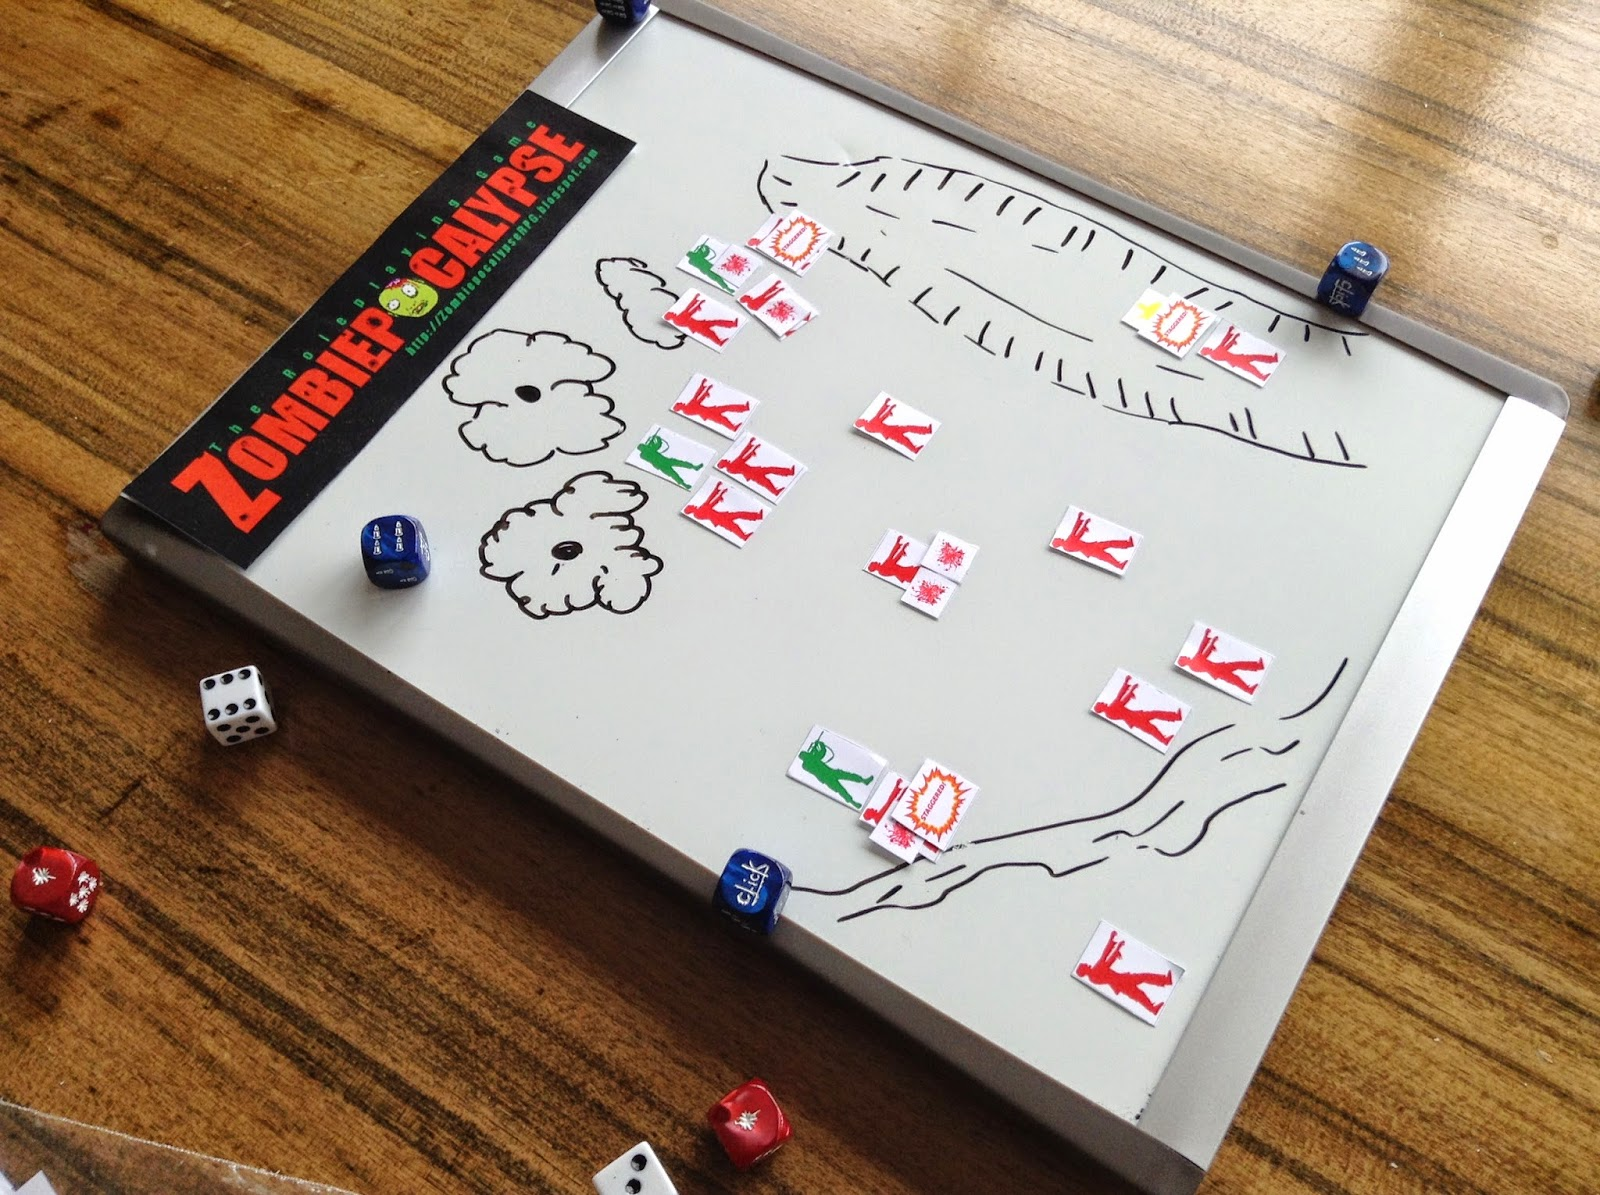 Paper tokens played on a whiteboard map